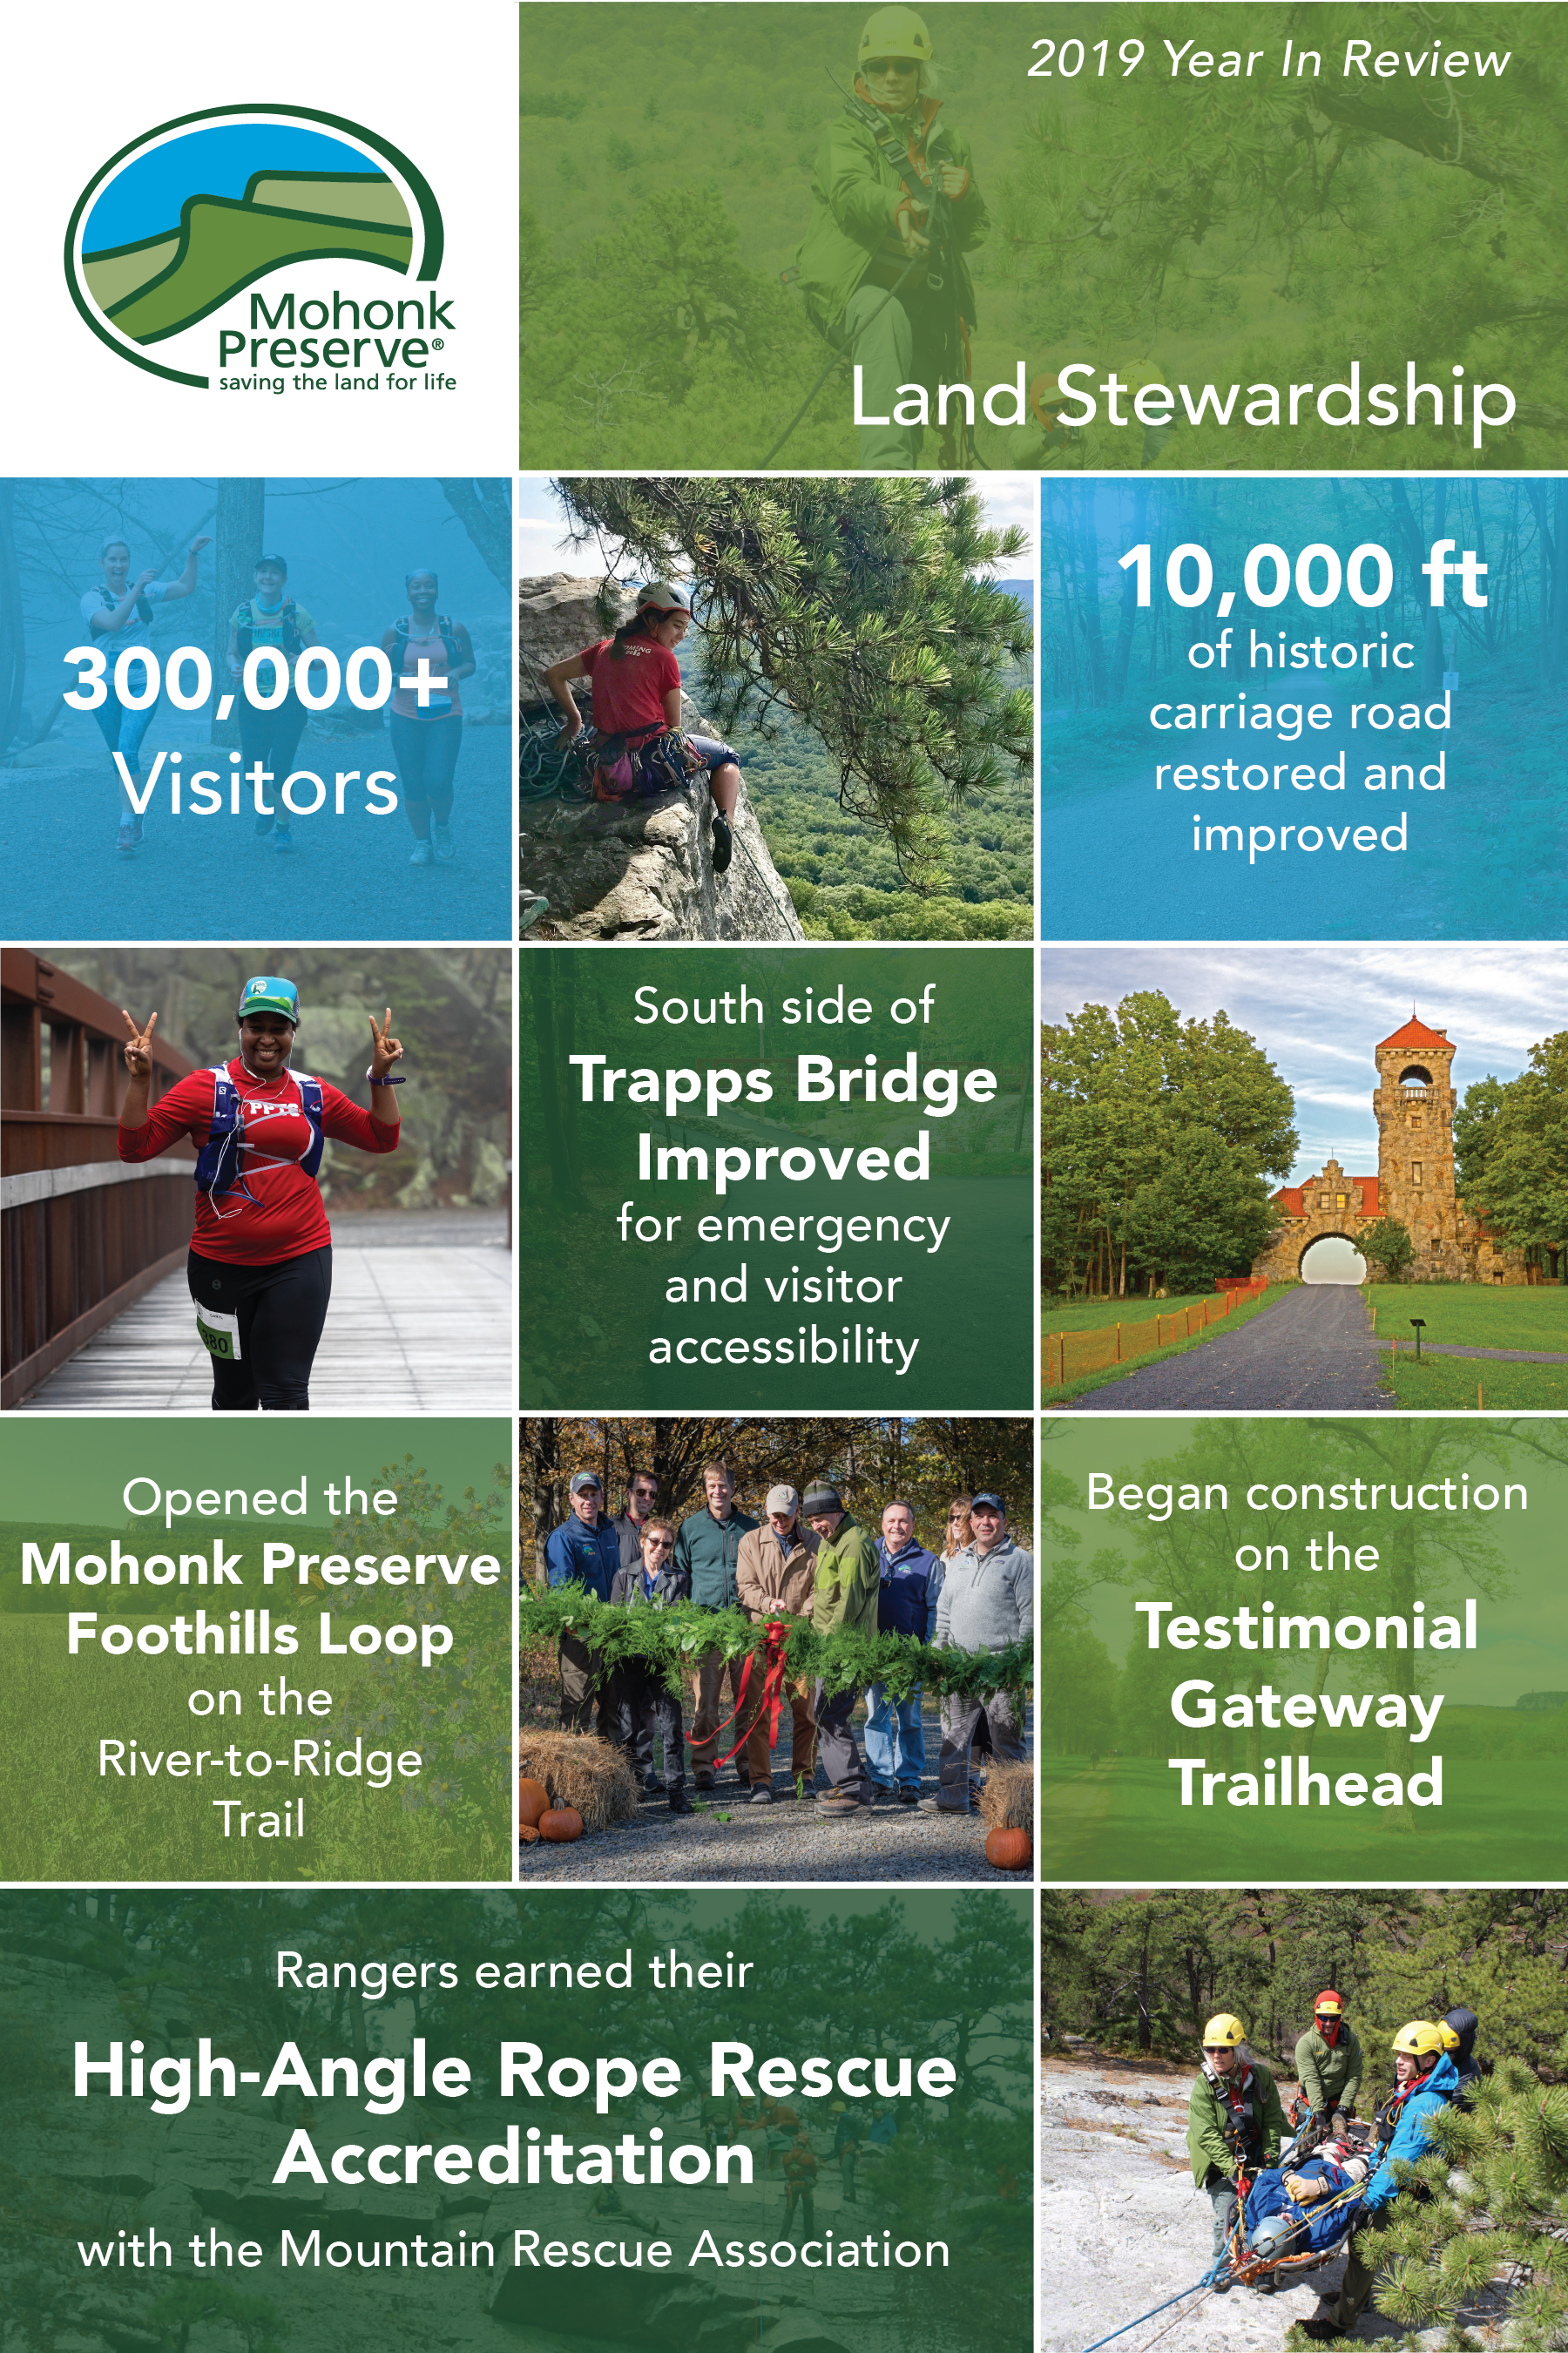 2019 Year In Review, Land Stewardship; 300,000+ visitors, 10,000 ft of historic carriage road restored and improved, South side of Trapps Bridge improved for emergency and visitor accessibility, opened the Mohonk Preserve Foothills Loop on the River-to-Ridge Trail, Began construction on the Testimonial Gateway Trailhead, Rangers earned their High-Angle Rope Rescue Accreditation with the Mountain Rescue Association